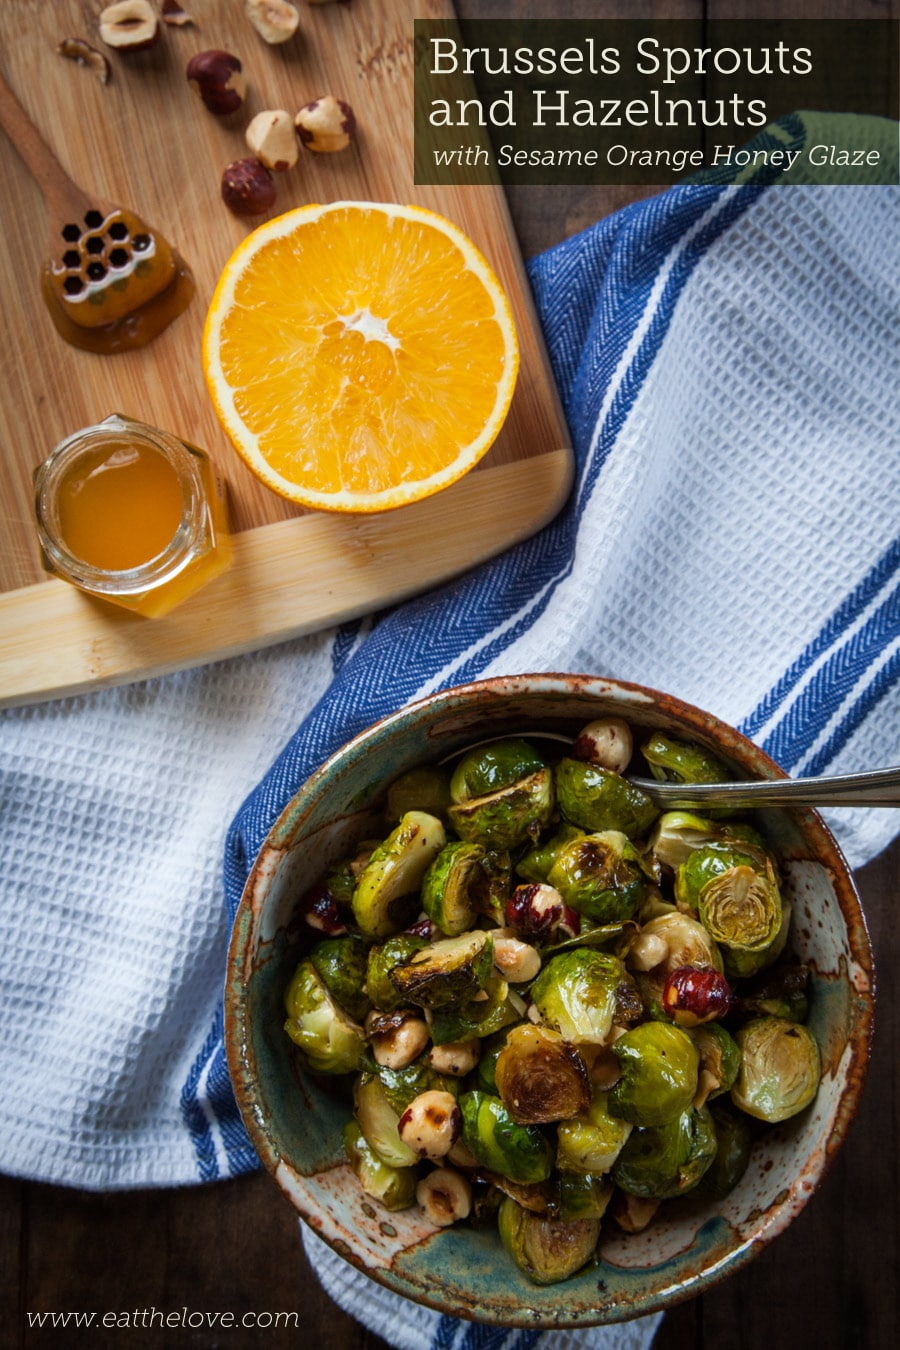 Brussels Sprouts and Hazelnuts in a Sesame Orange Honey Glaze